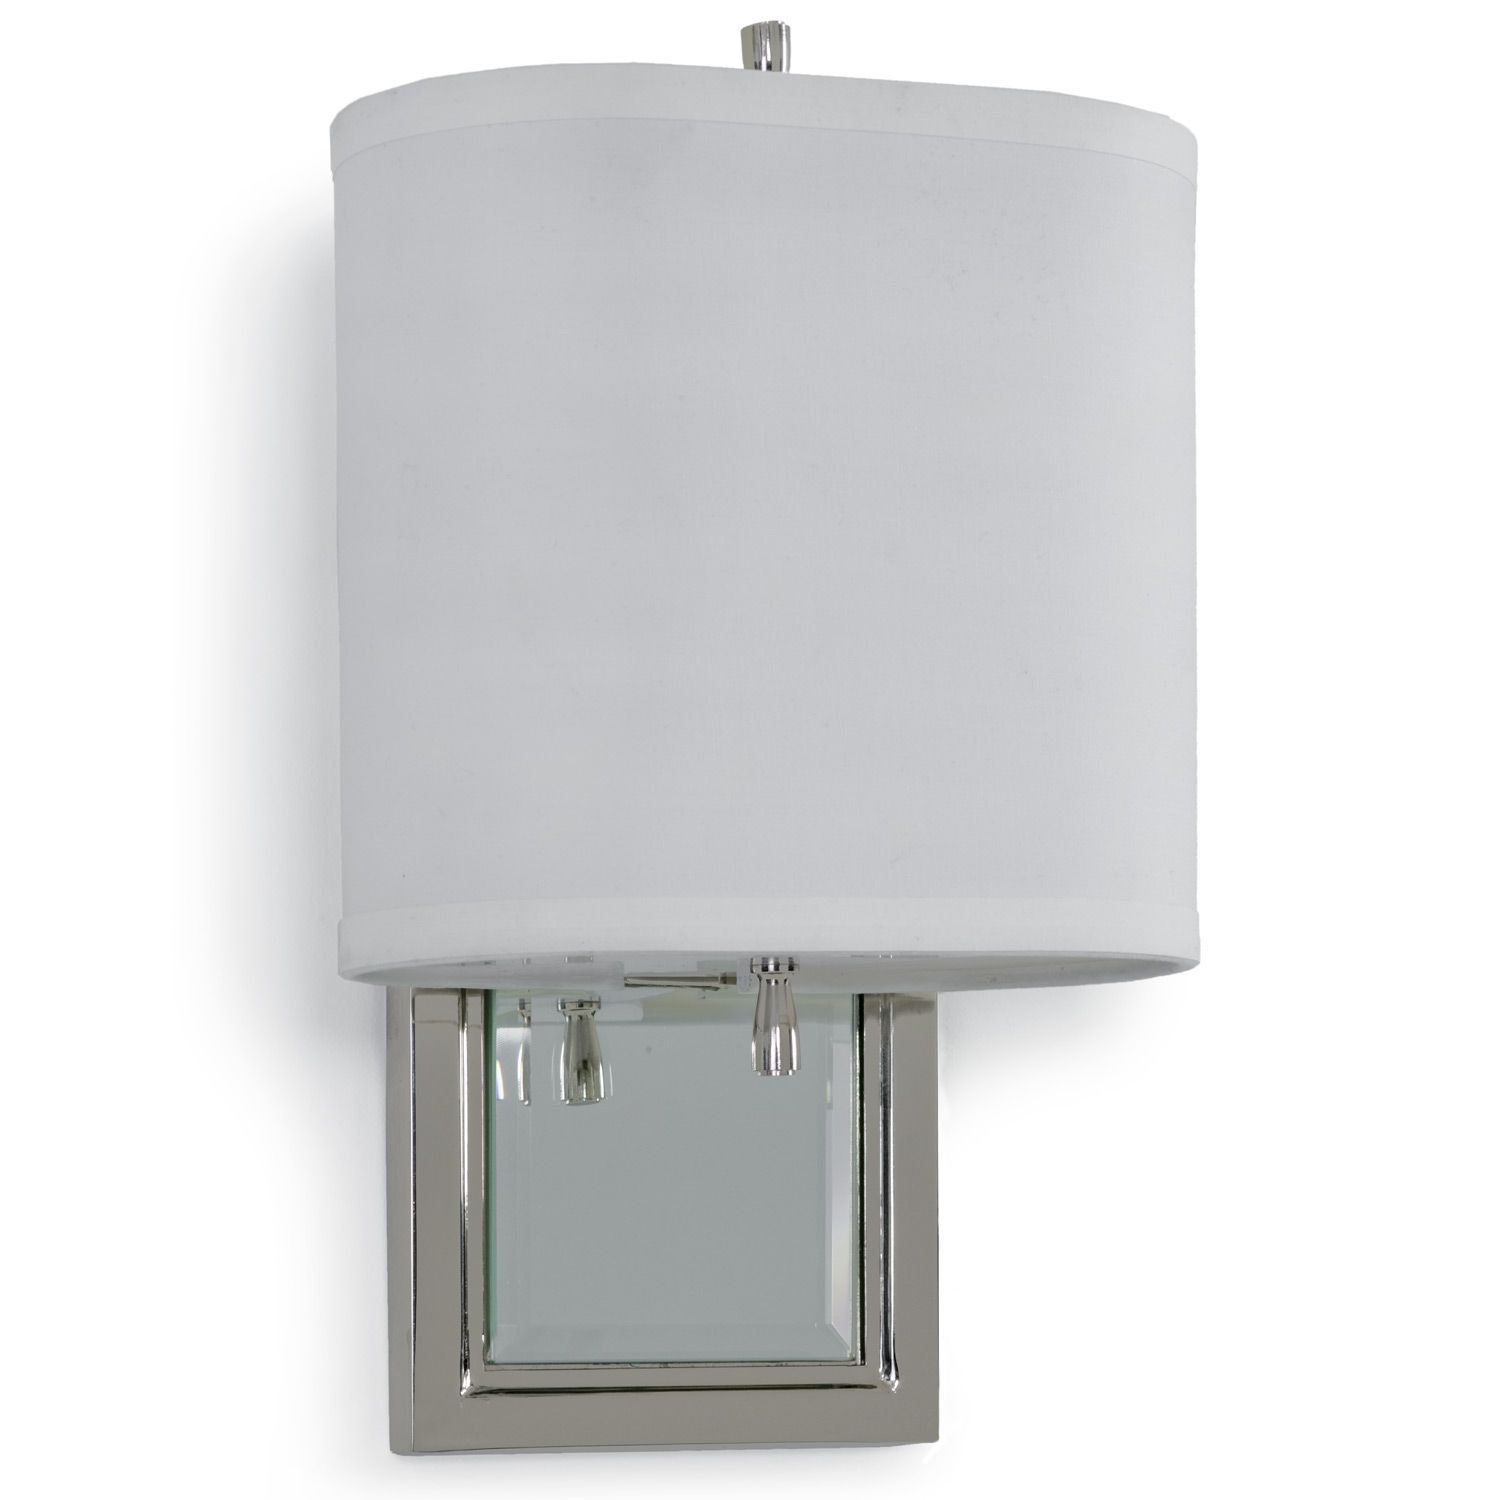 Regina Andrew Lighting Mirror Wall Sconce @LaylaGrayce $297